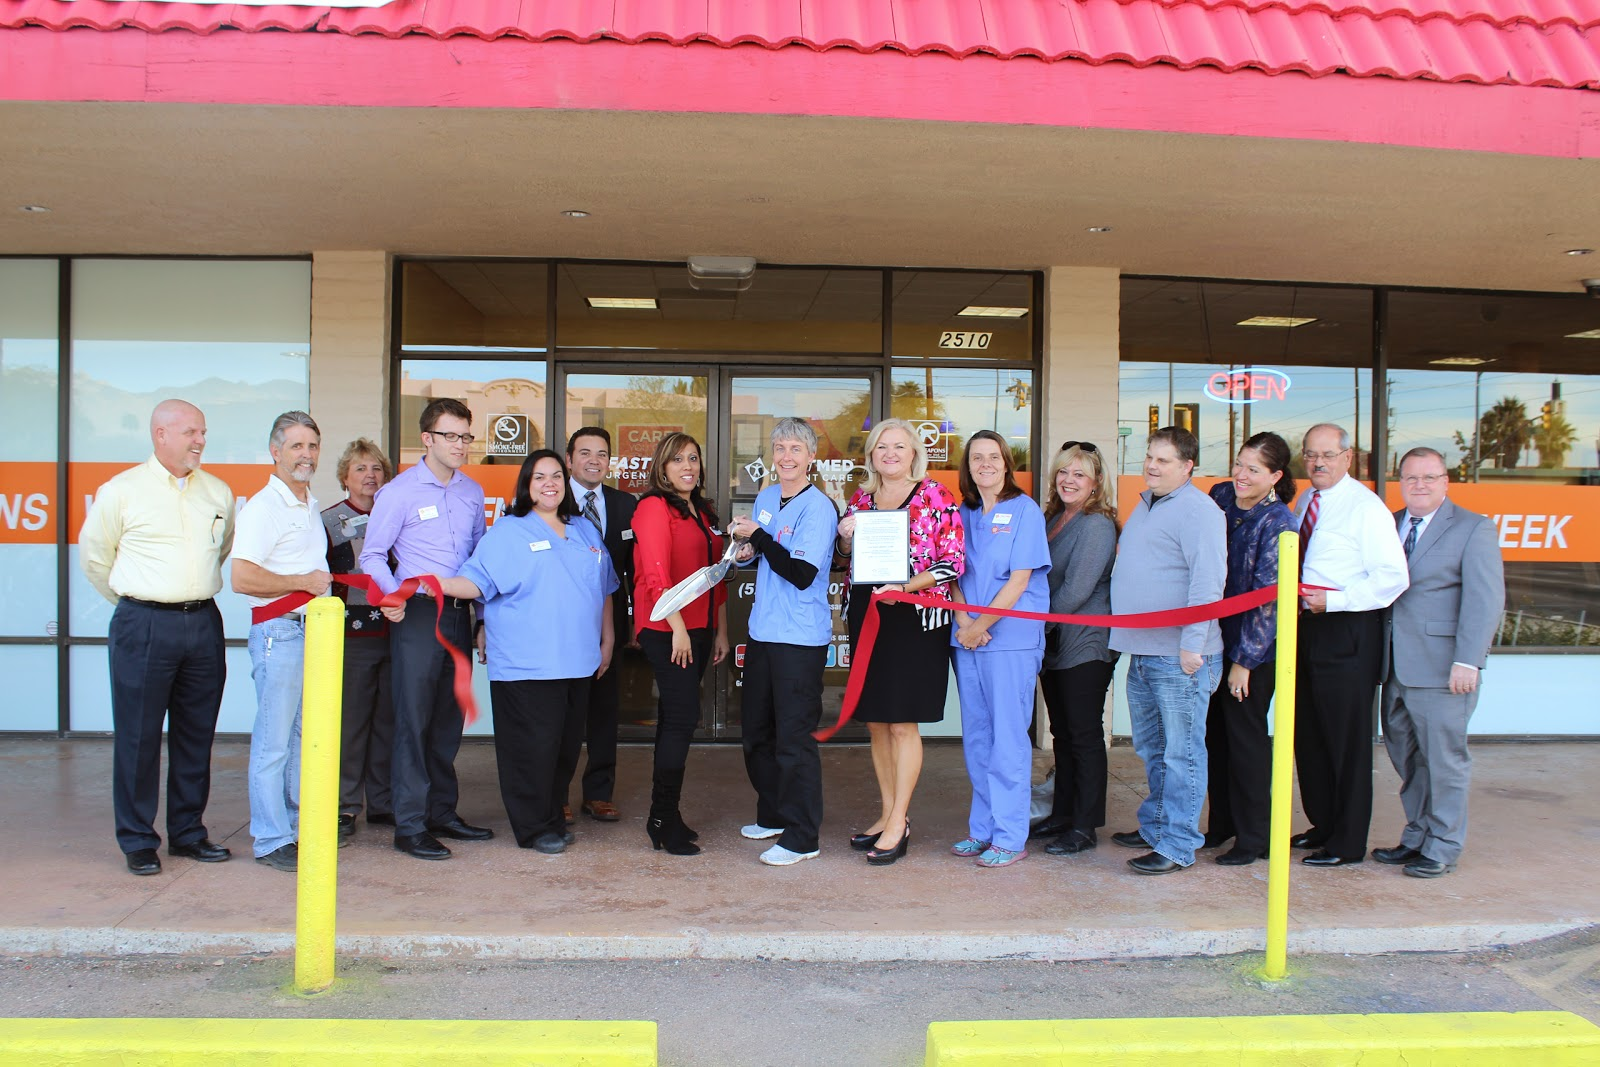 FastMed Urgent Care celebrated on Tuesday, January 7th, the opening of its seventh clinic in the Tucson area at the corner of S. Tucson Boulevard and E. Broadway Boulevard (2510 E. Broadway Blvd.), representing FastMed's 27th location in Arizona!